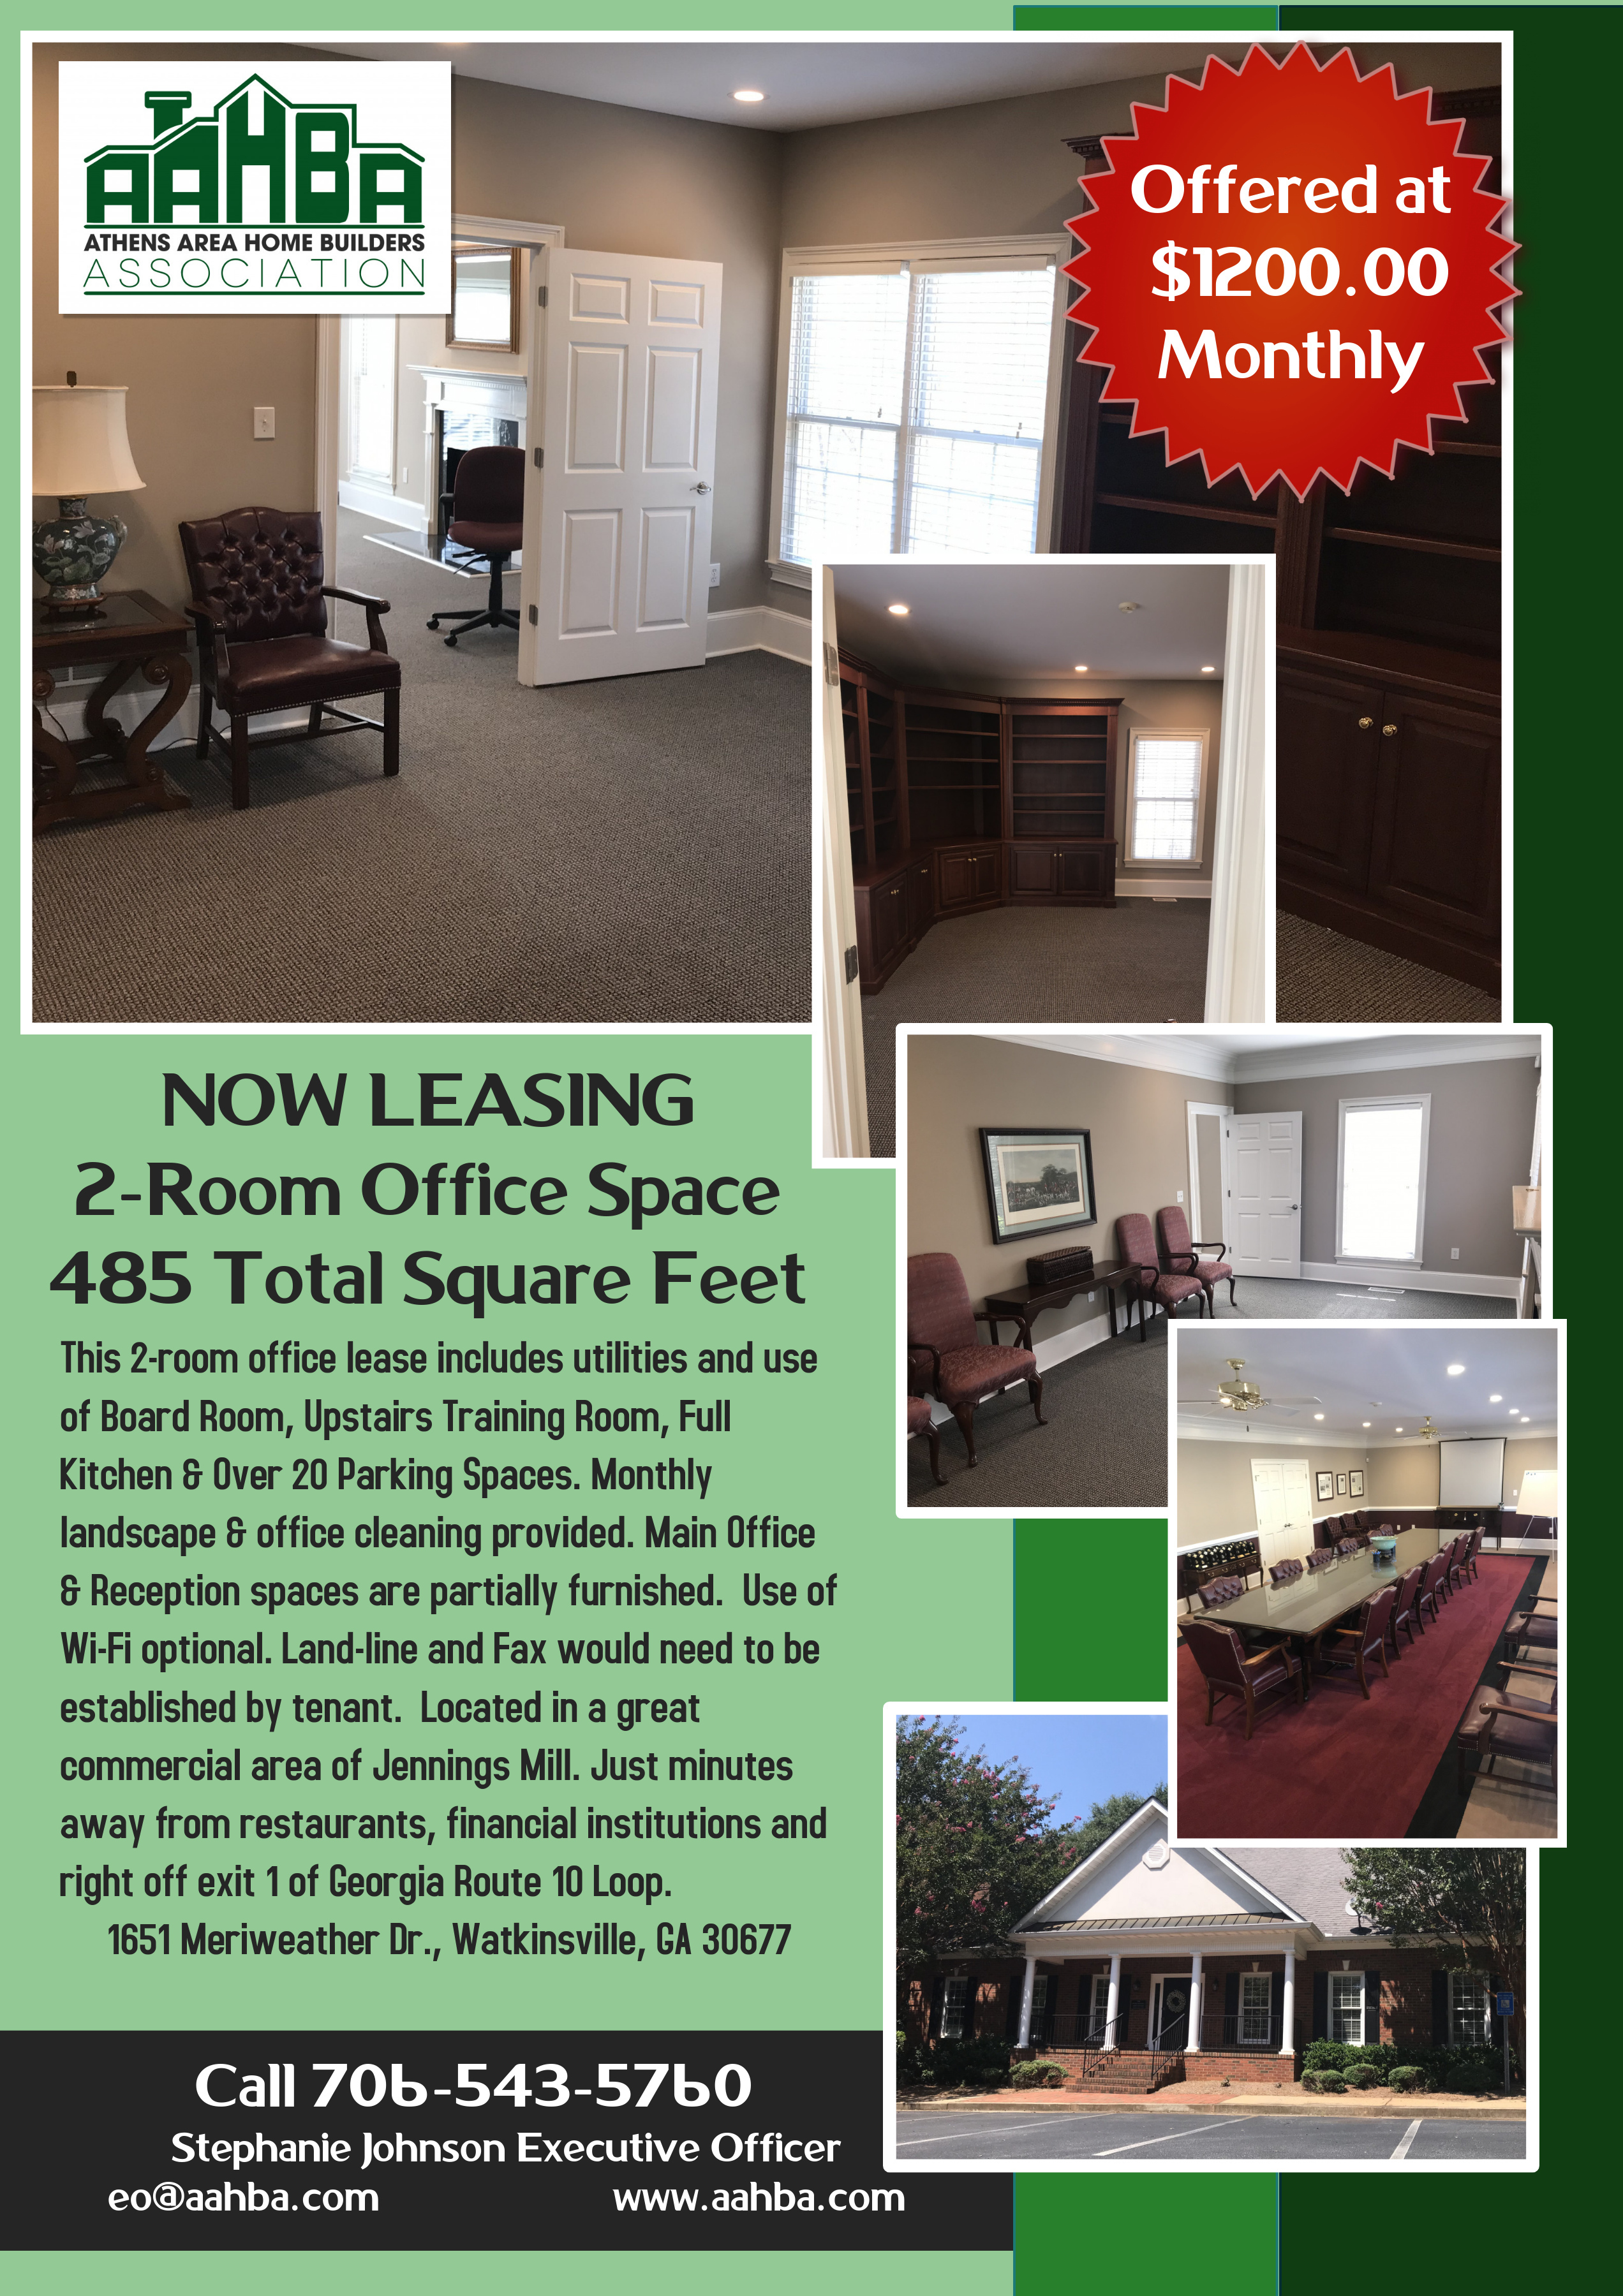 AAHBA 2-room office lease flyer (1)